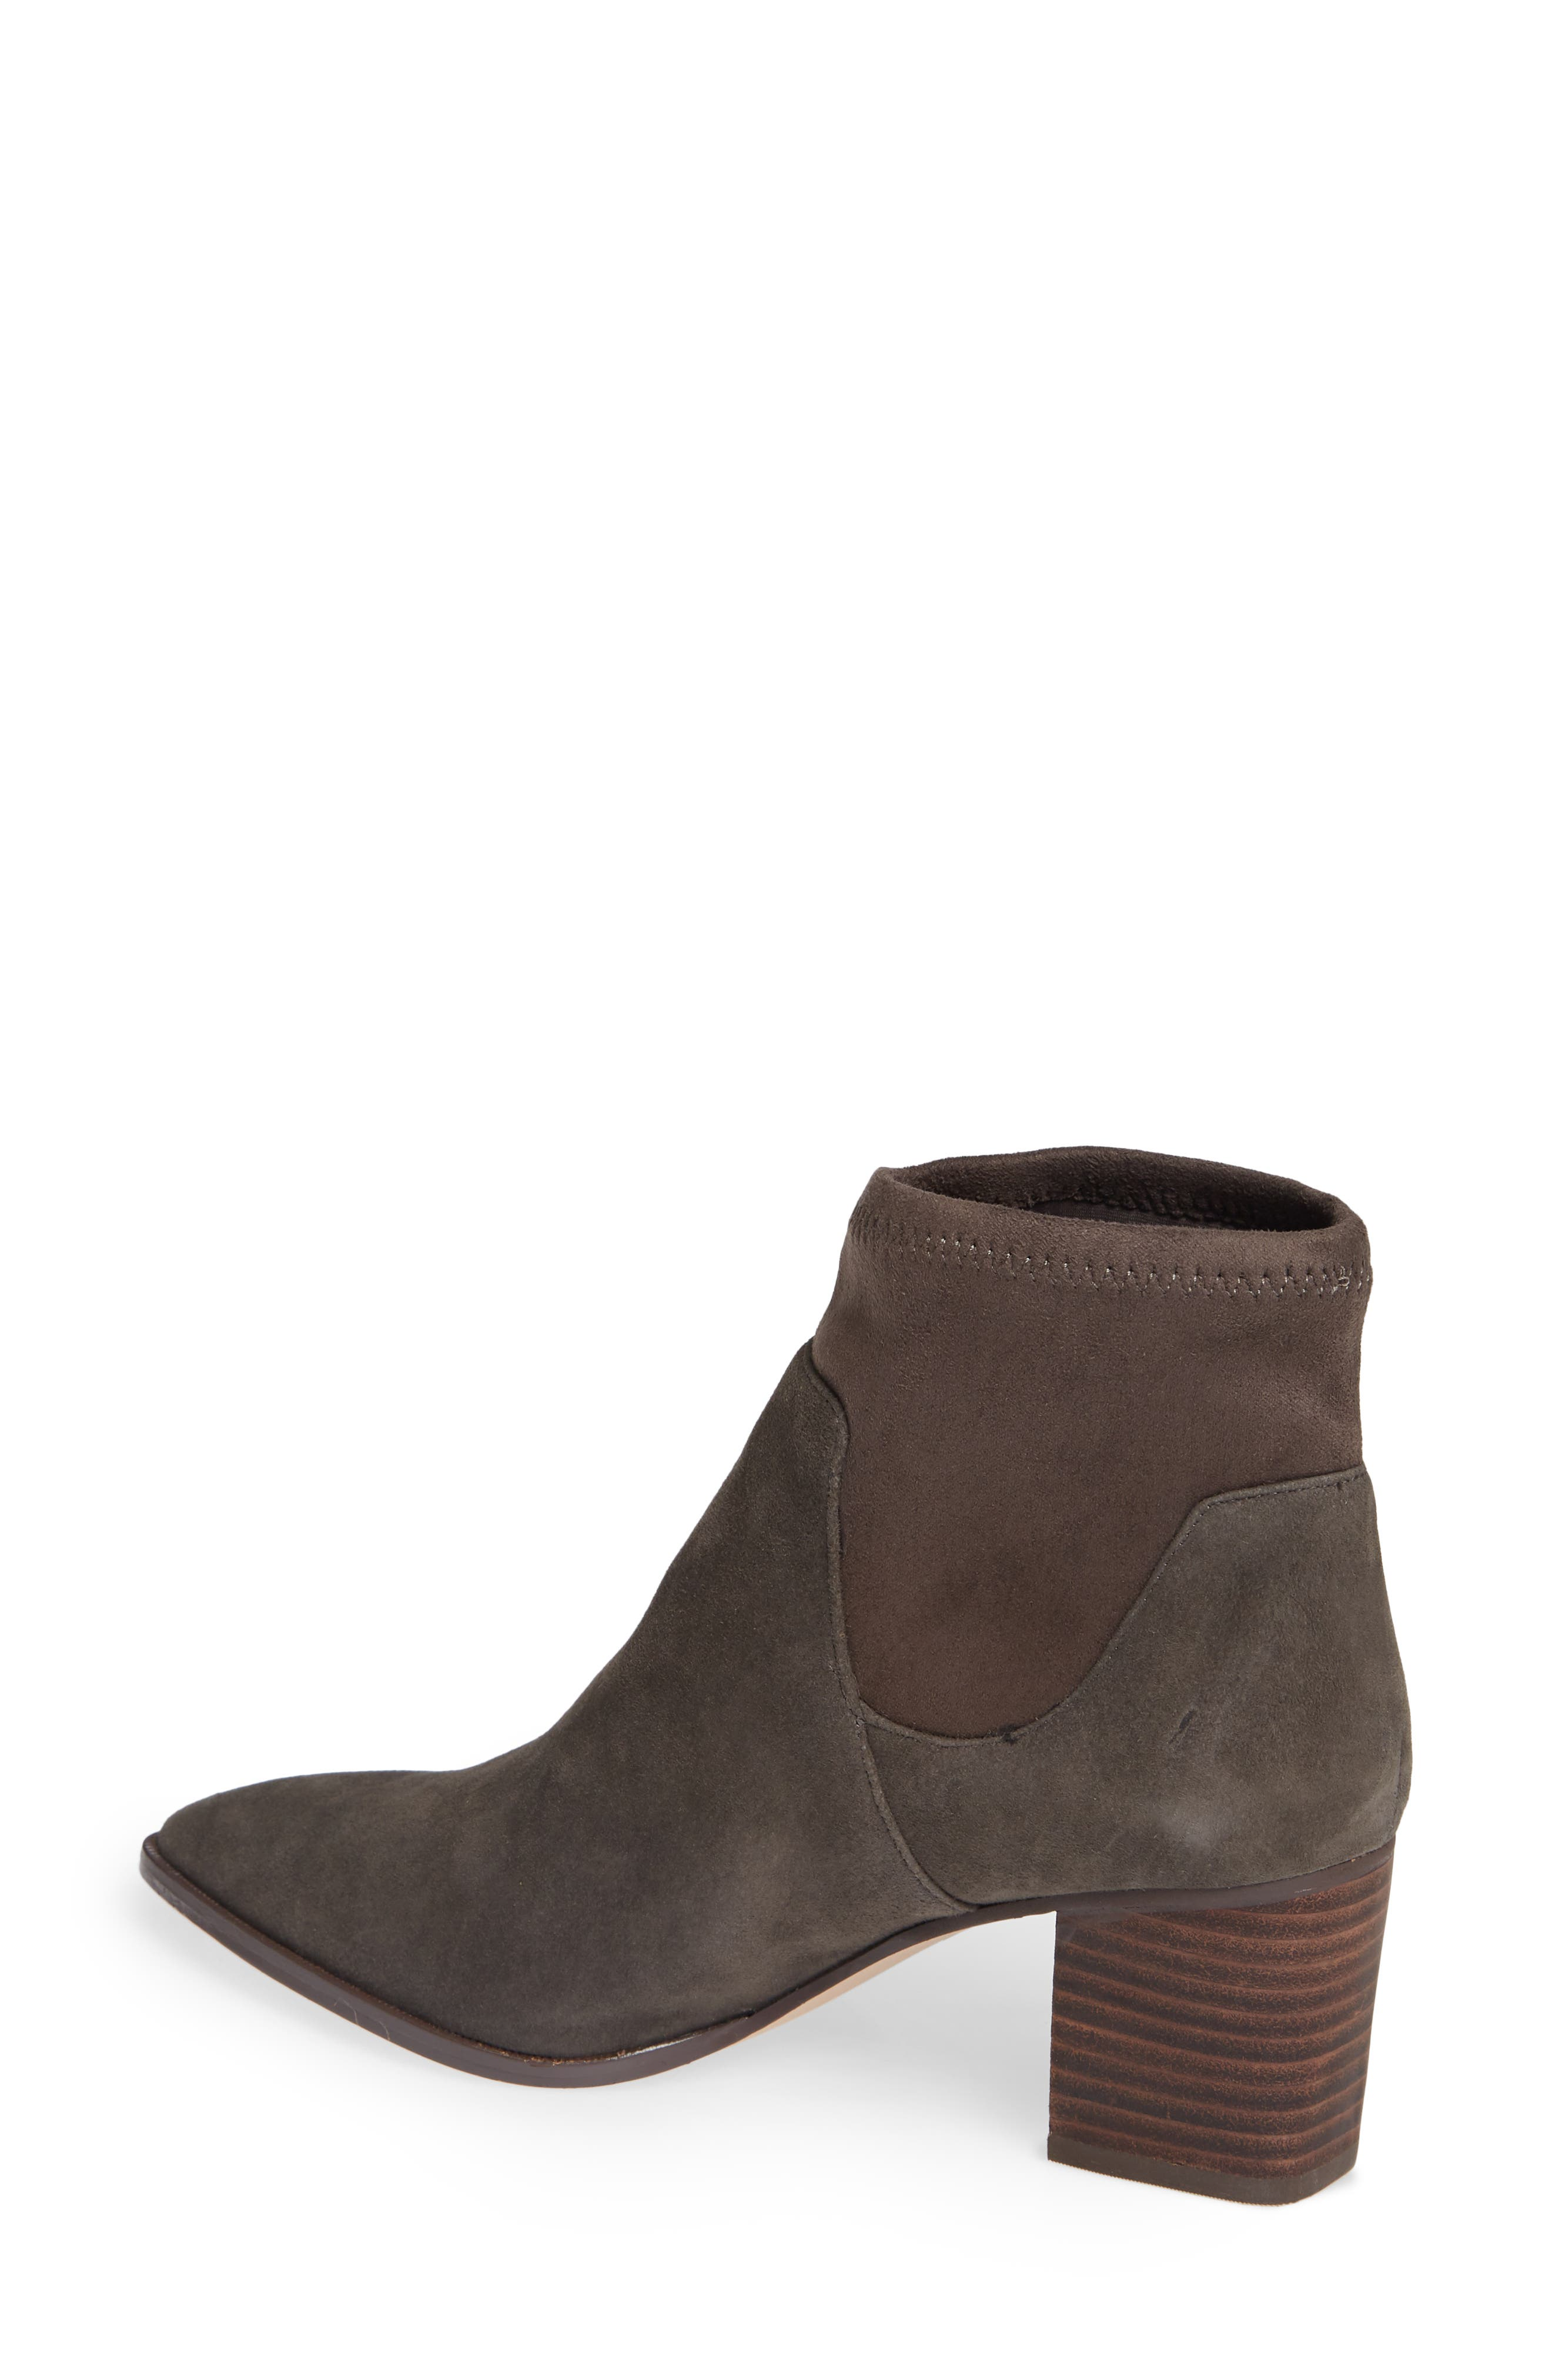 Dawnina Bootie,                             Alternate thumbnail 2, color,                             IRON SUEDE